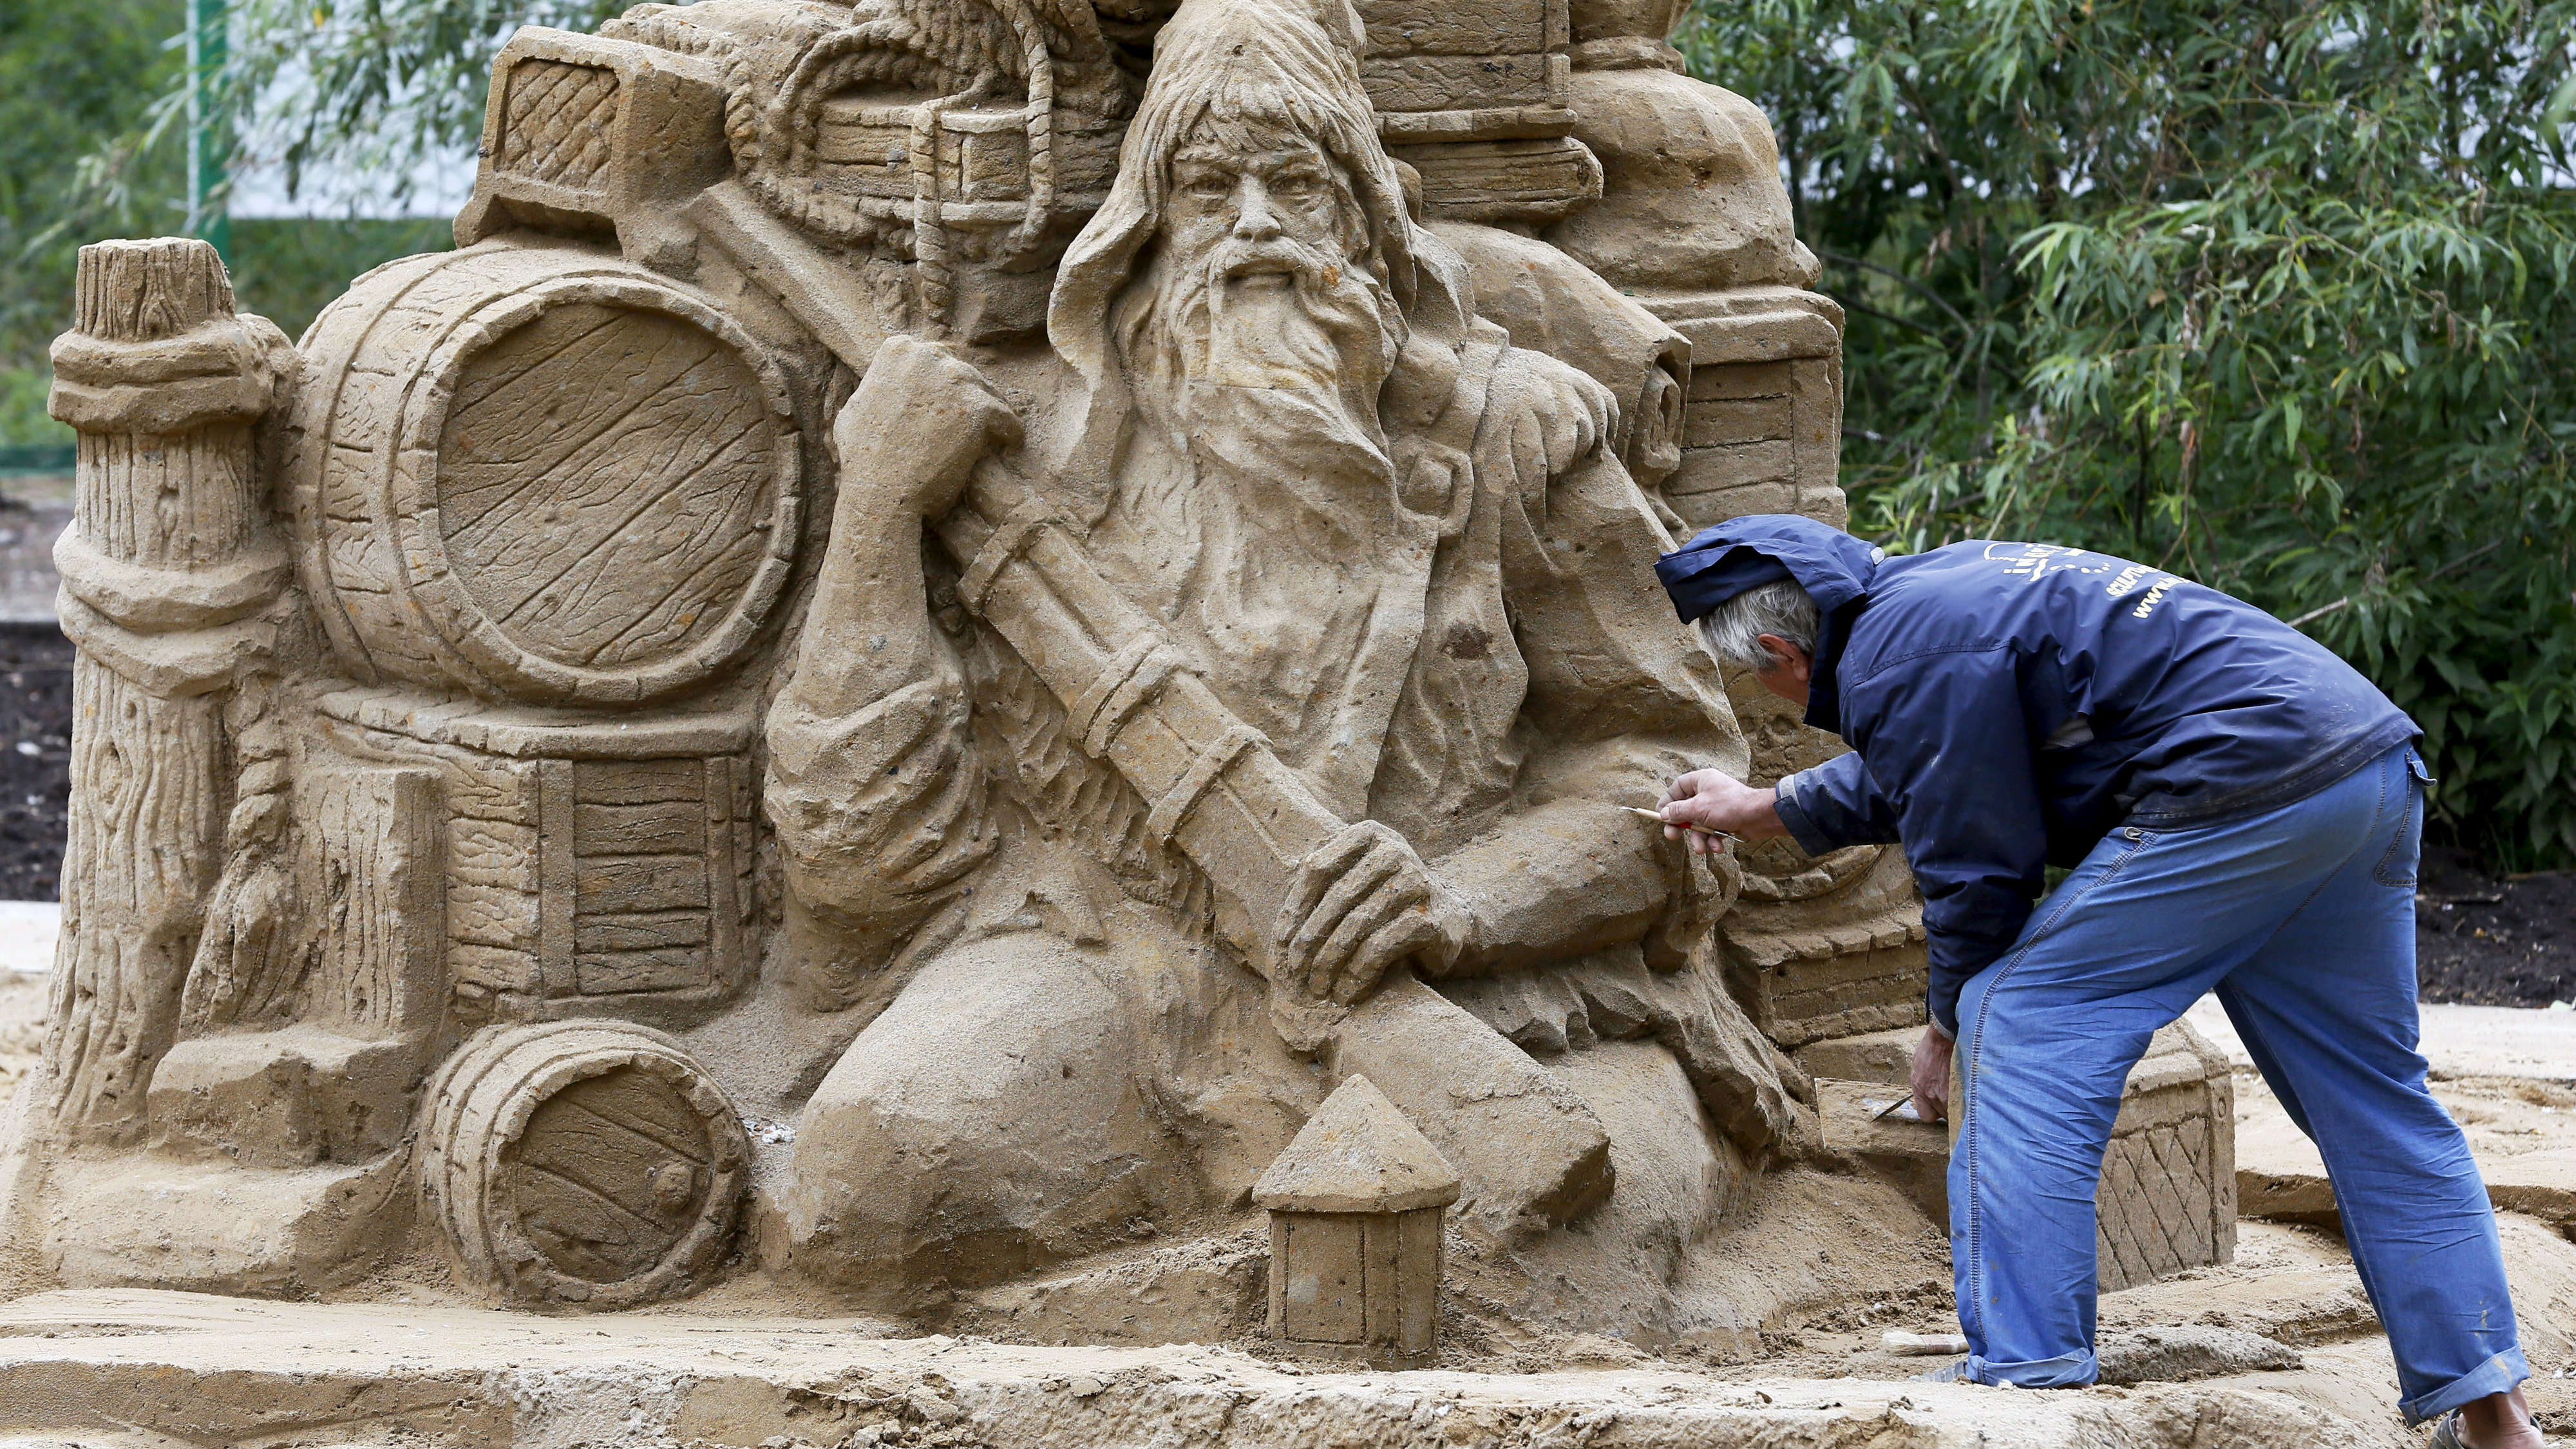 """Russian sculptor Valery Zaitsev works on the """"Robinson Crusoe"""" sand sculpture during the preparations for the """"Favorite Book"""" thematic exhibition of sand sculptures in the Siberian city of Krasnoyarsk, Russia, June 25, 2015. The exhibition, created by professional artists from several Siberian cities and students of the Krasnoyarsk State Arts Institute, will be opened on June 27, according to organizers. Reuters/Ilya Naymushin"""